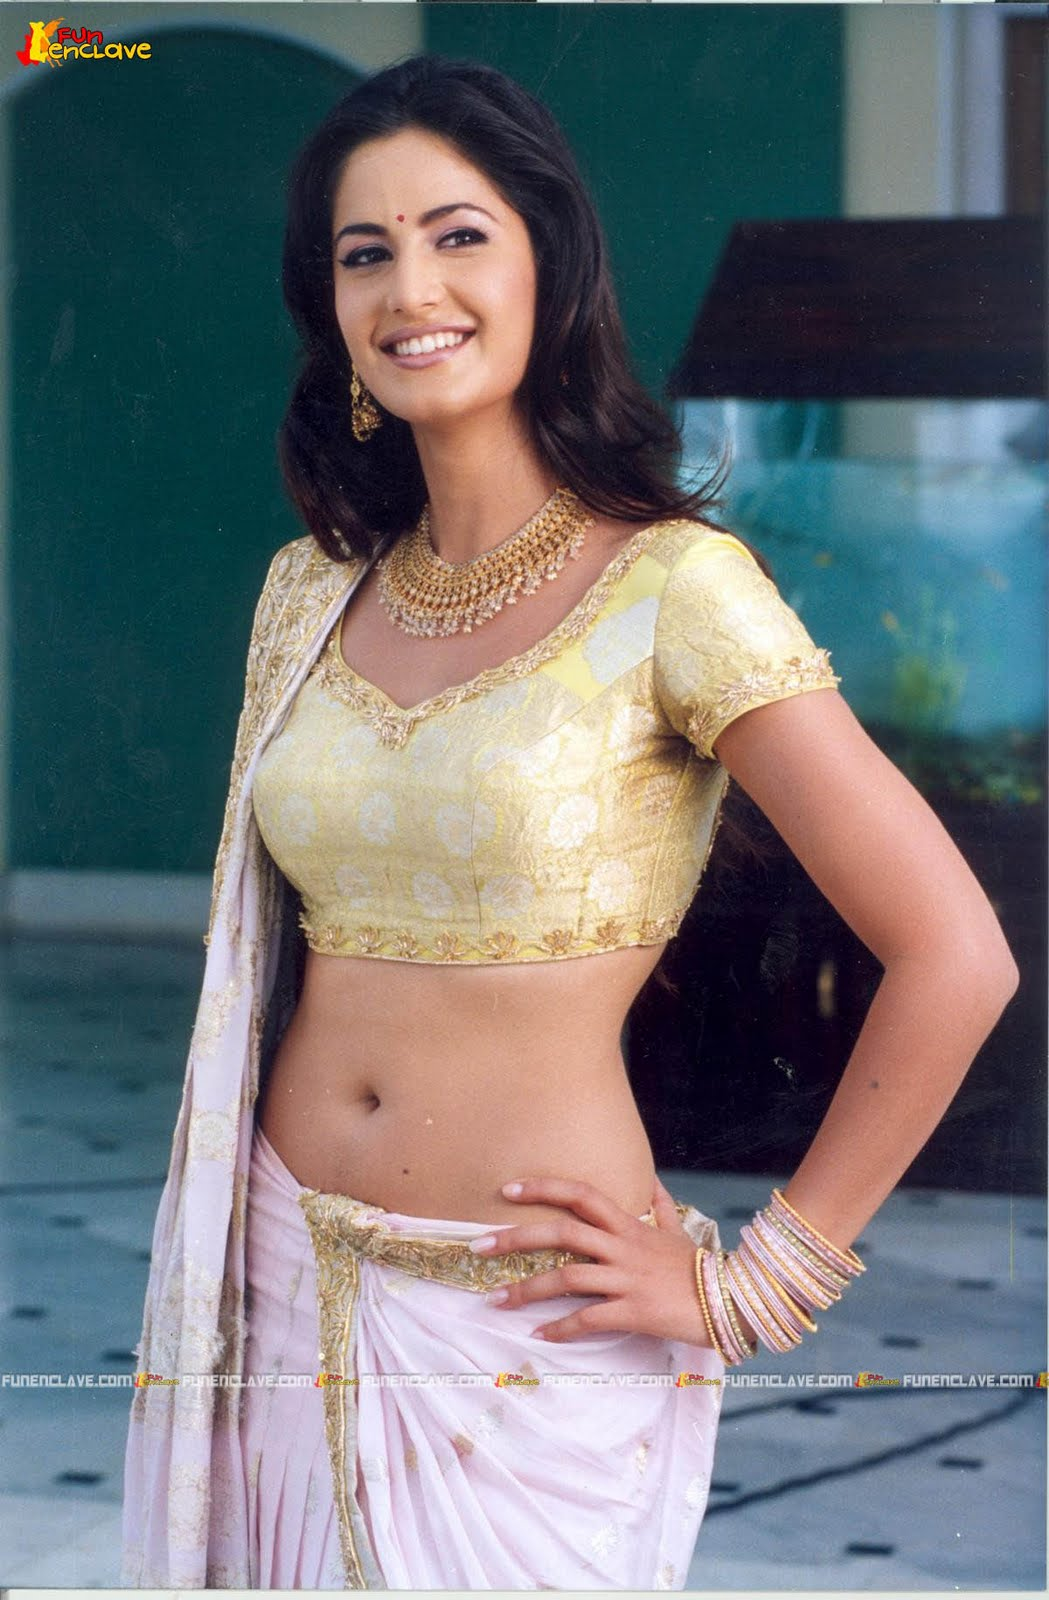 Katrina Kaif Sexy Blog Bollywood Actress Katrina Kaif In -2388